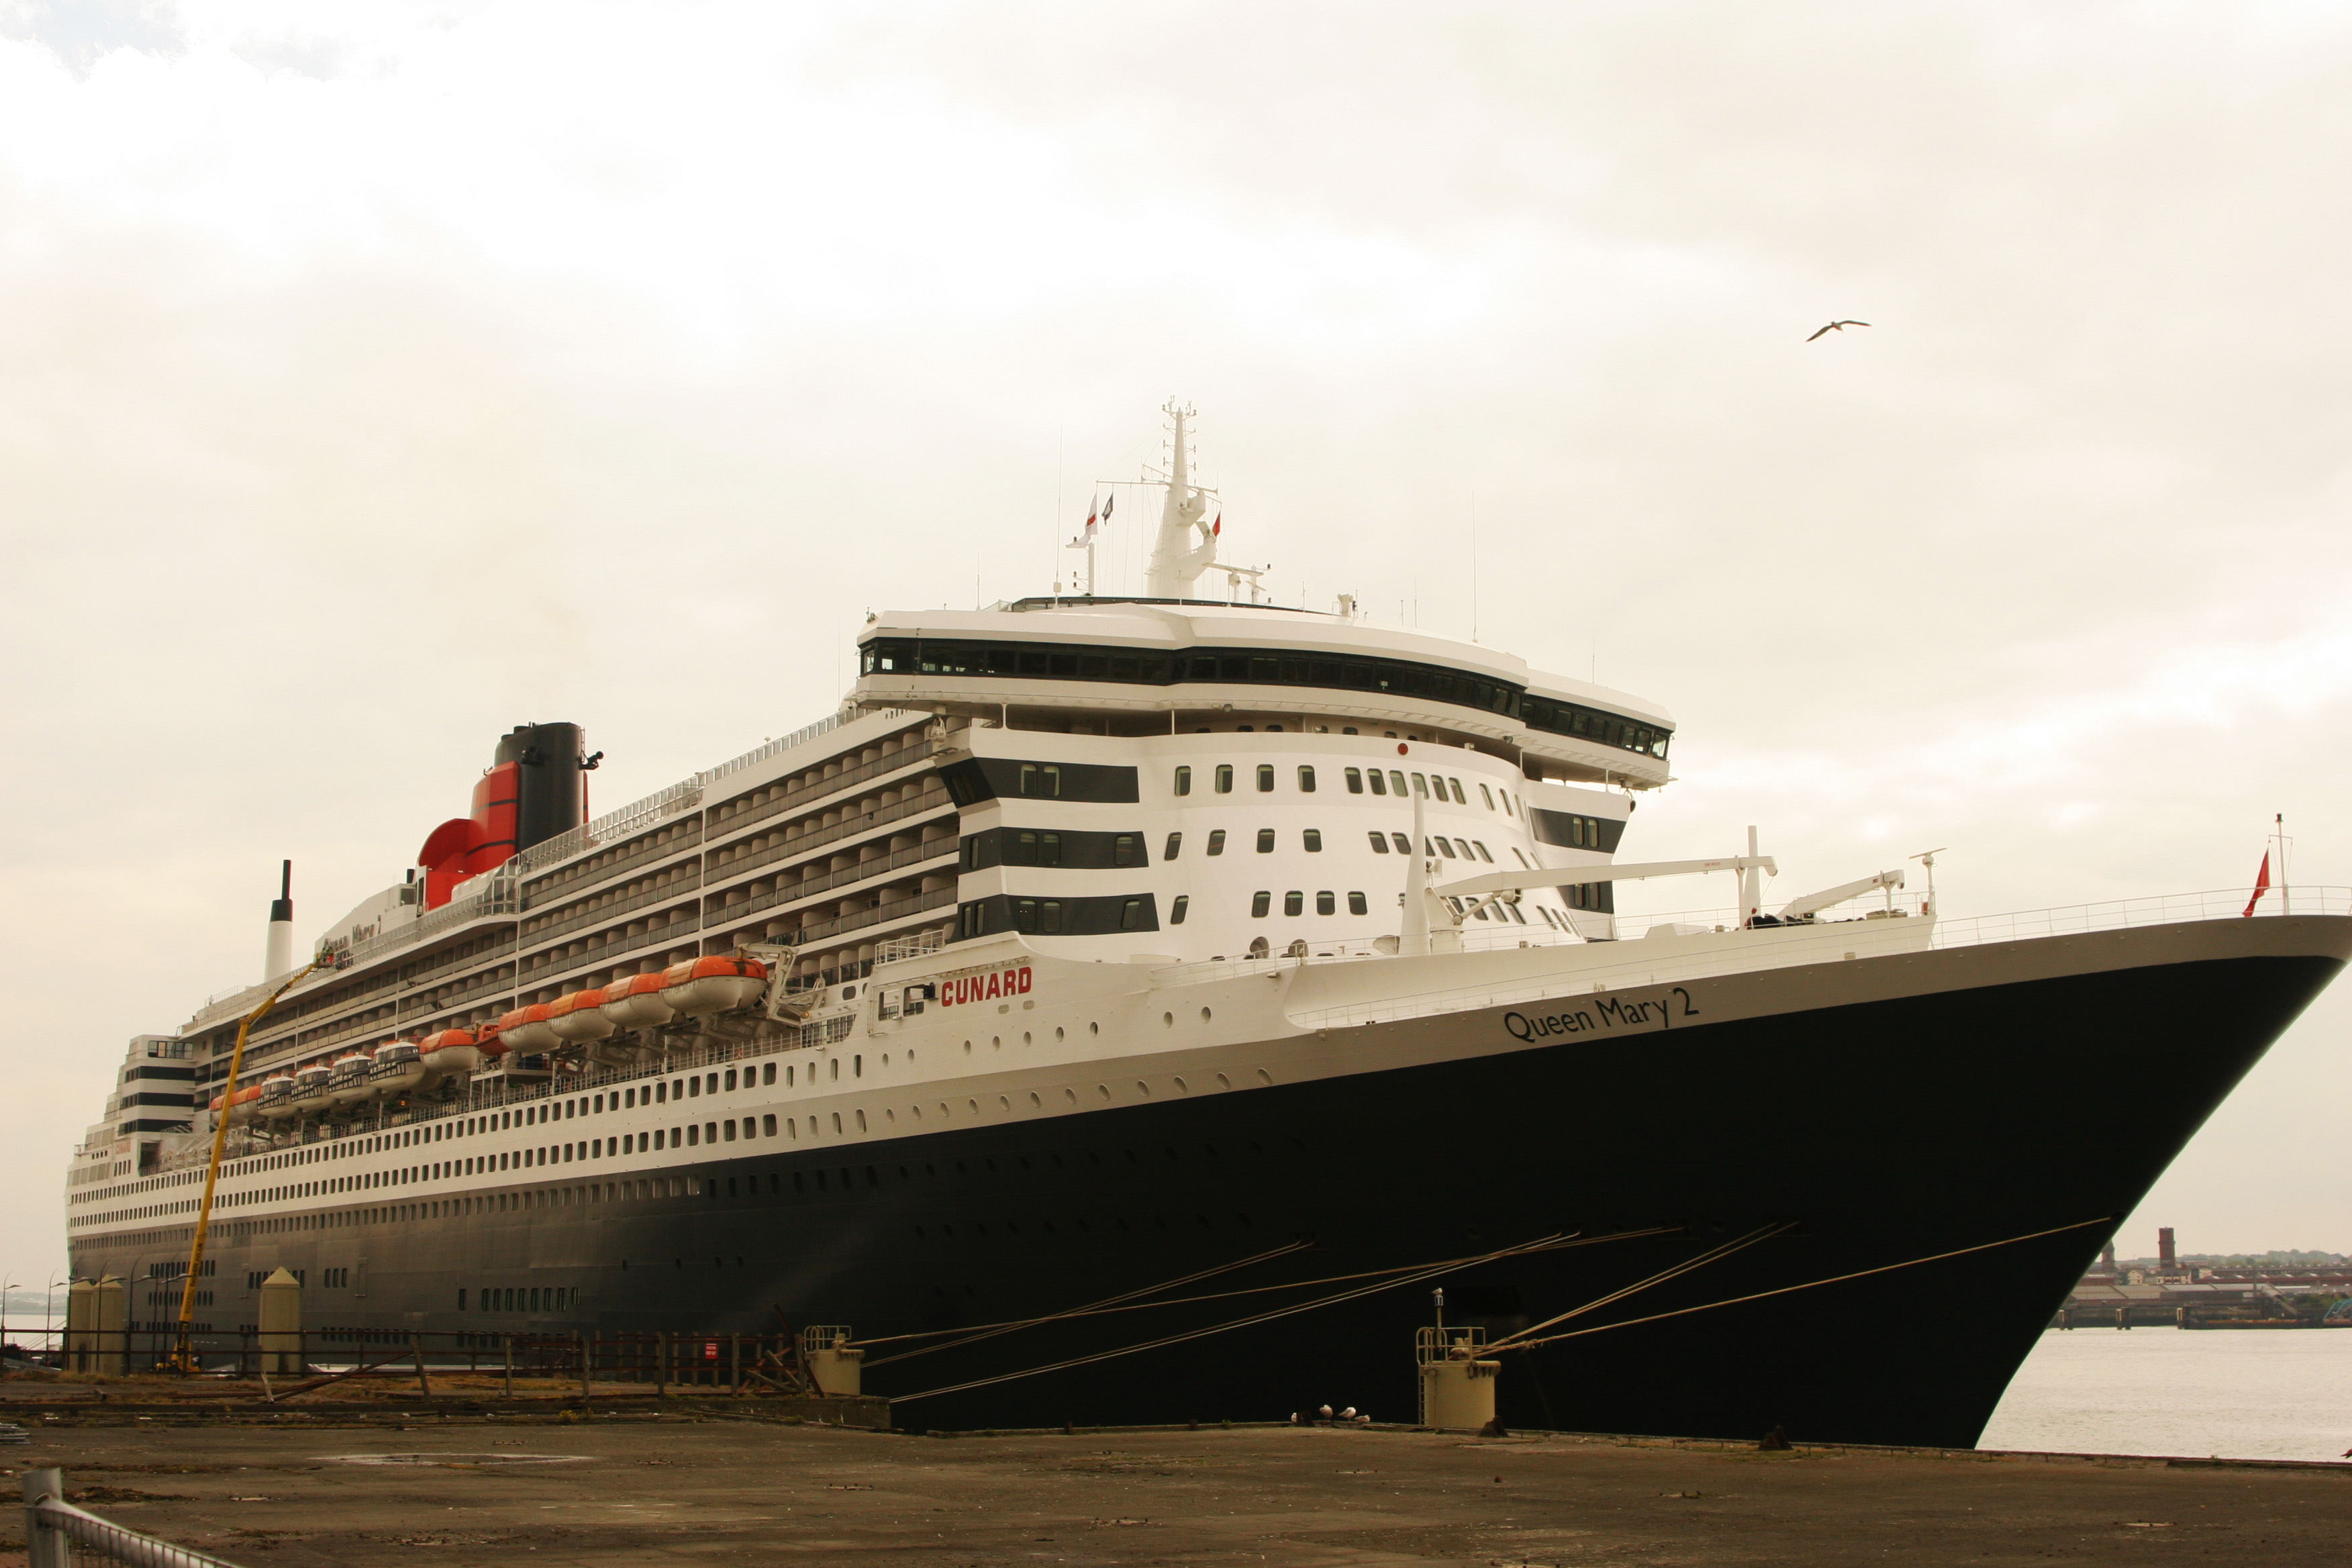 queen mary 2 in liverpool briansimpsons. Black Bedroom Furniture Sets. Home Design Ideas